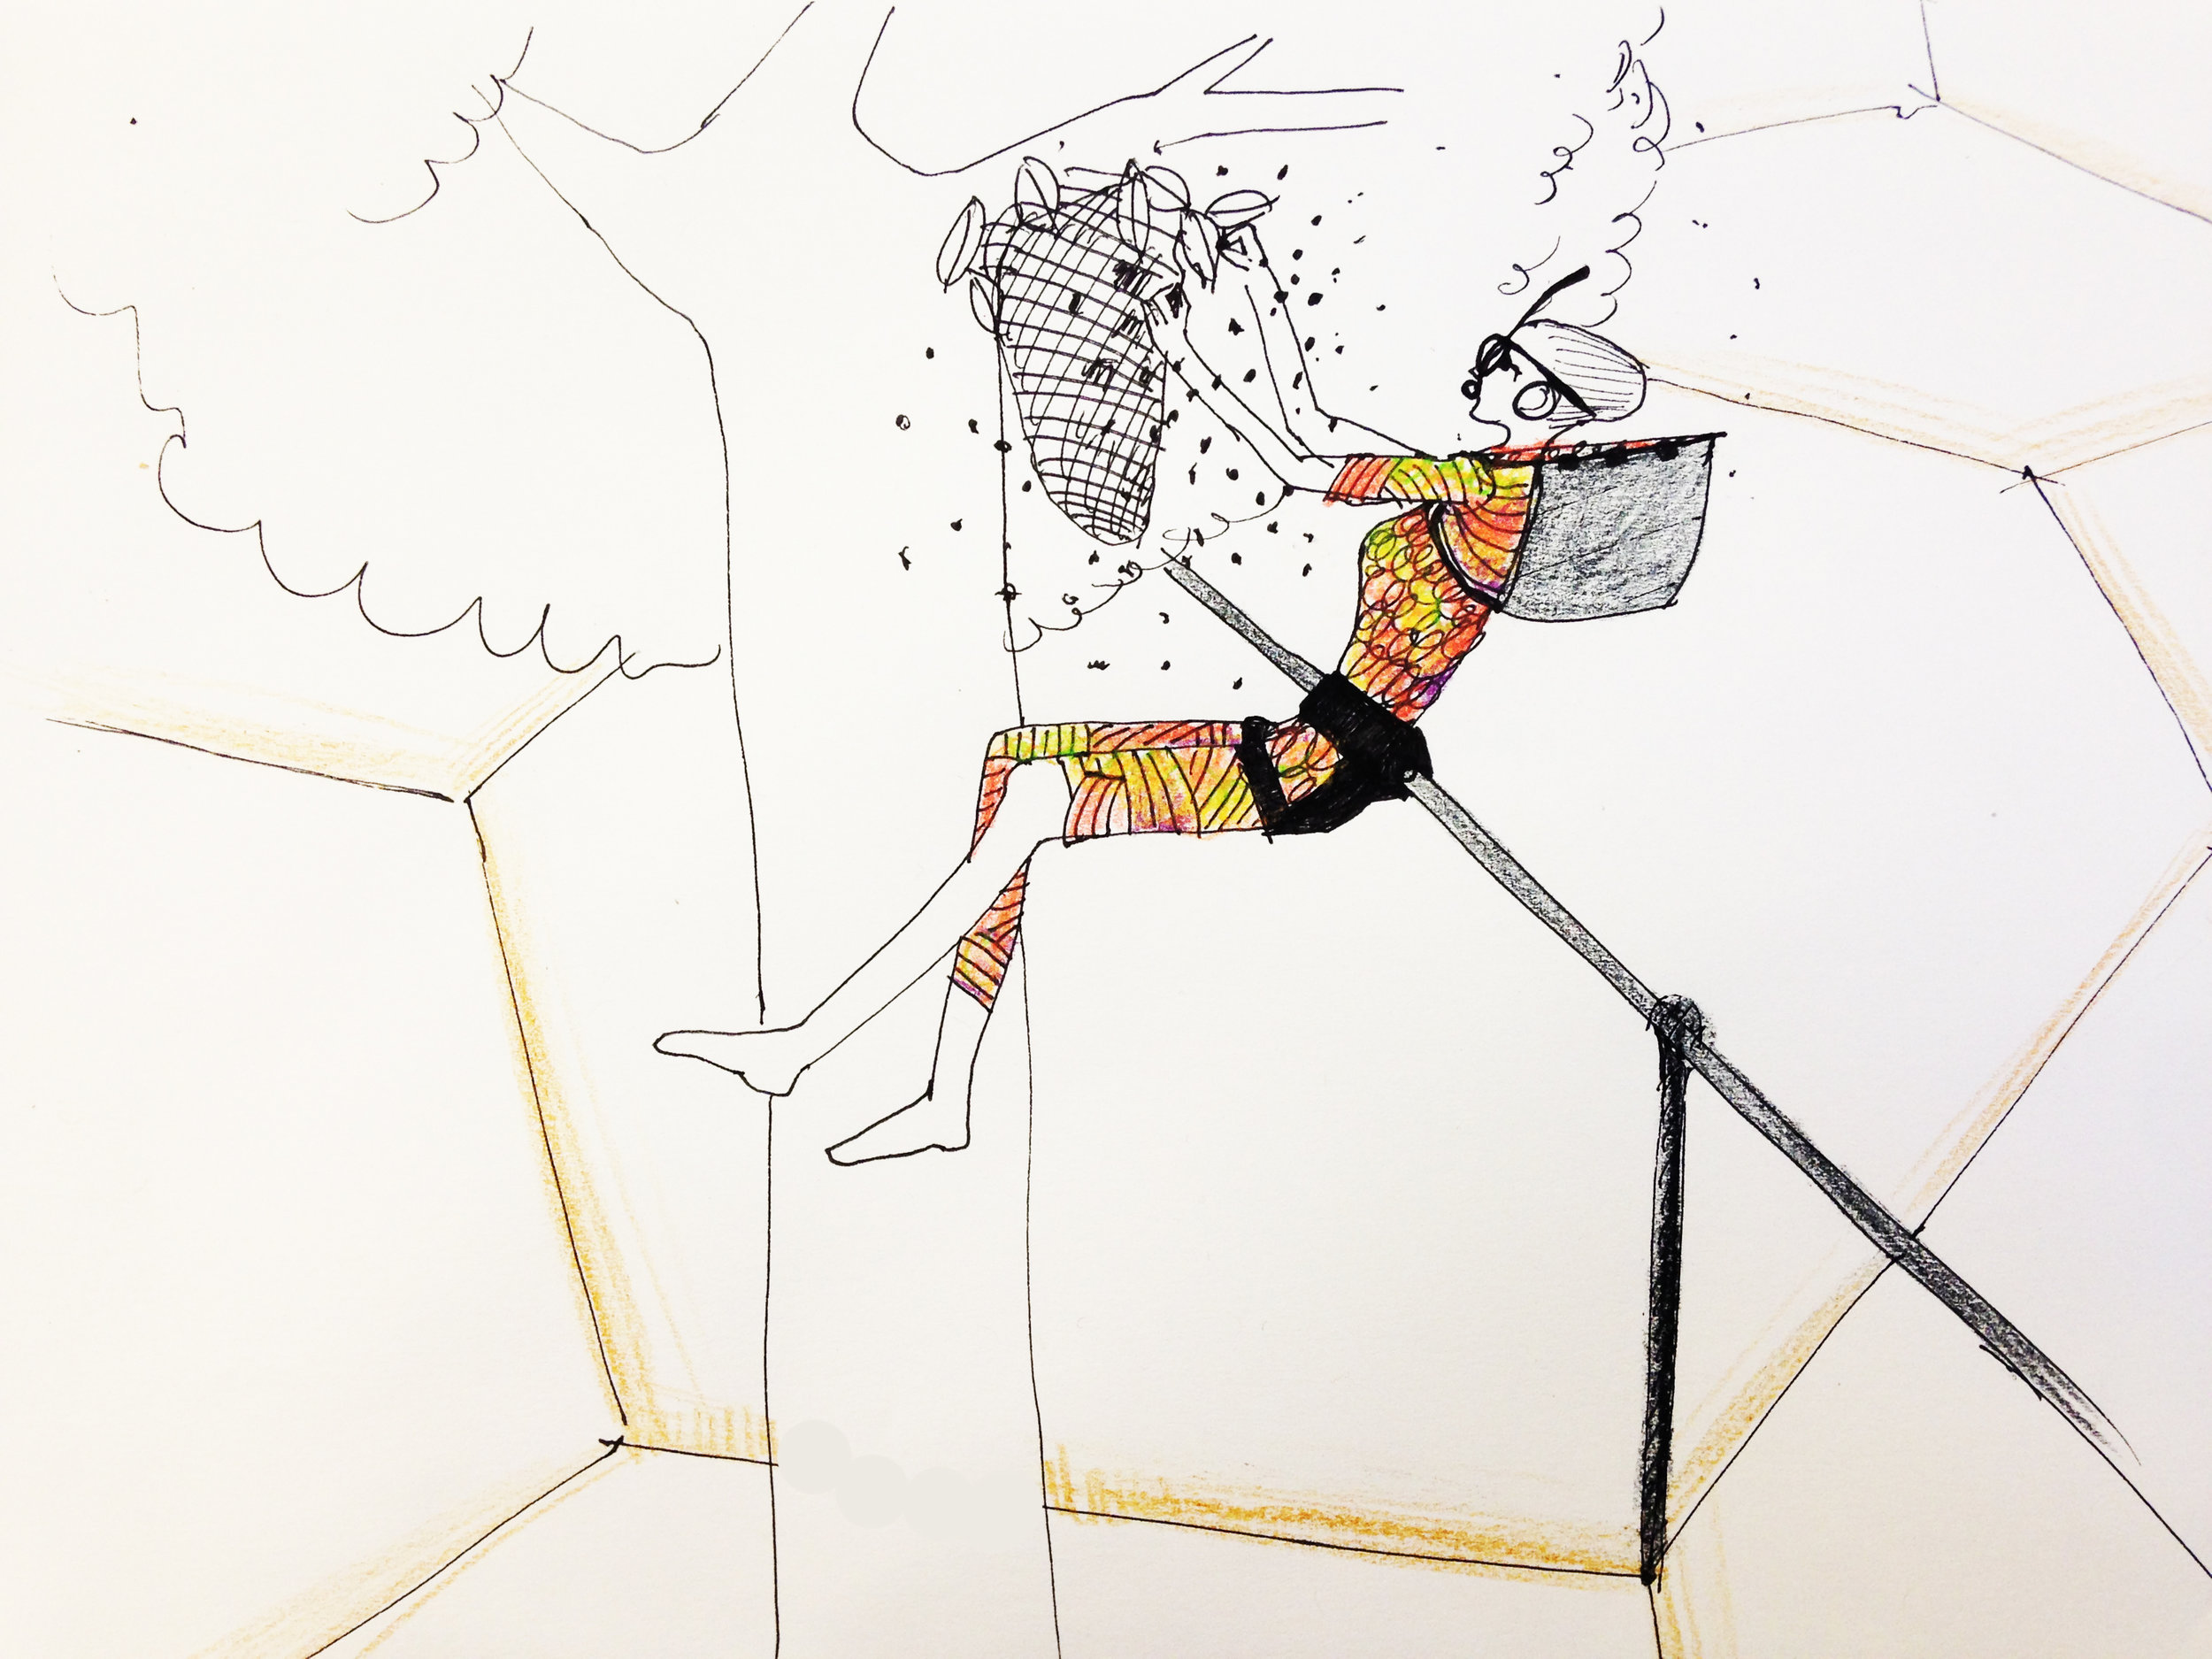 Concept sketch of an employee in field gear, performing maintenace on a hive.